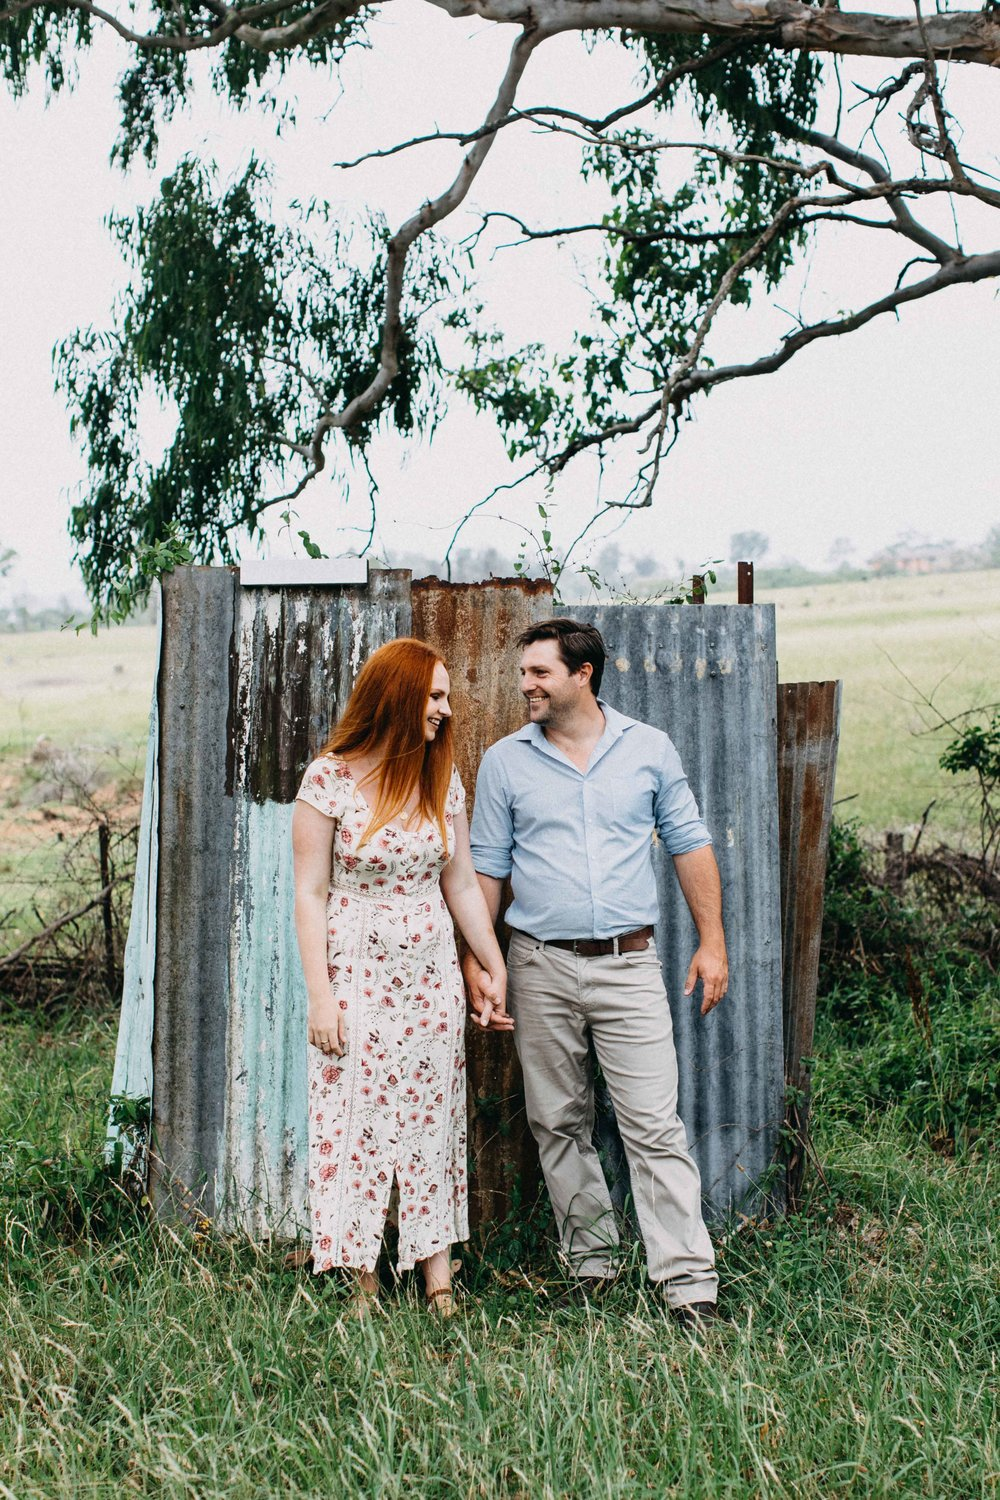 camden-engagement-session-wollondilly-photography-nadine-bernard-23.jpg